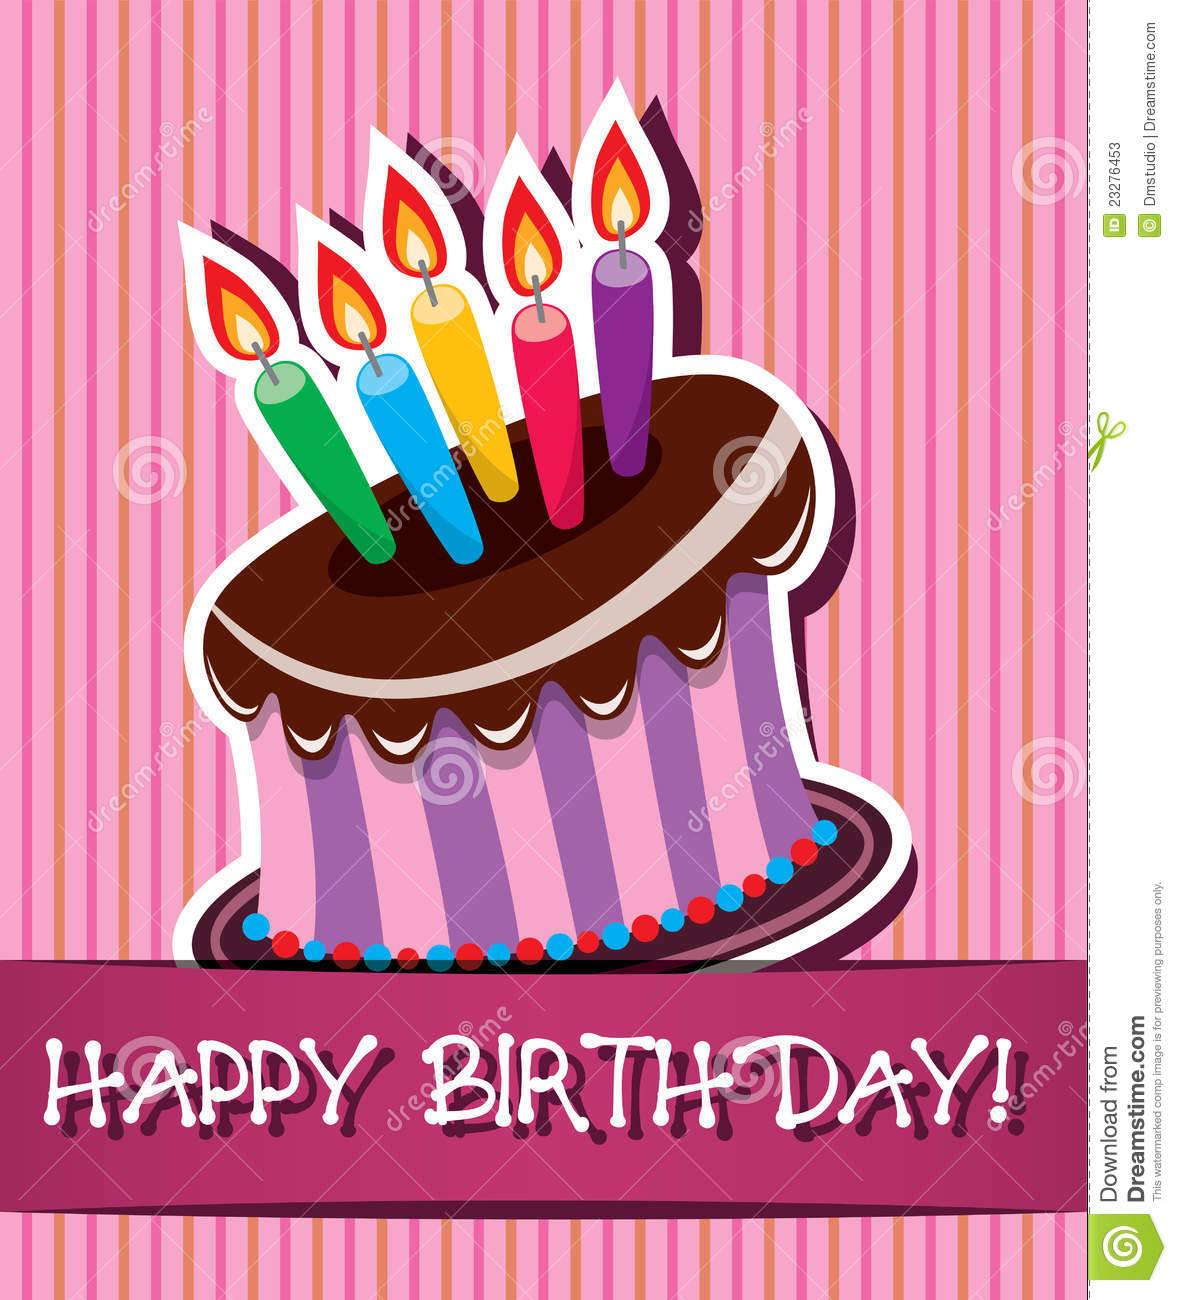 Cake Images Card : Vector Birthday Card With Cake And Candles Stock Photos ...